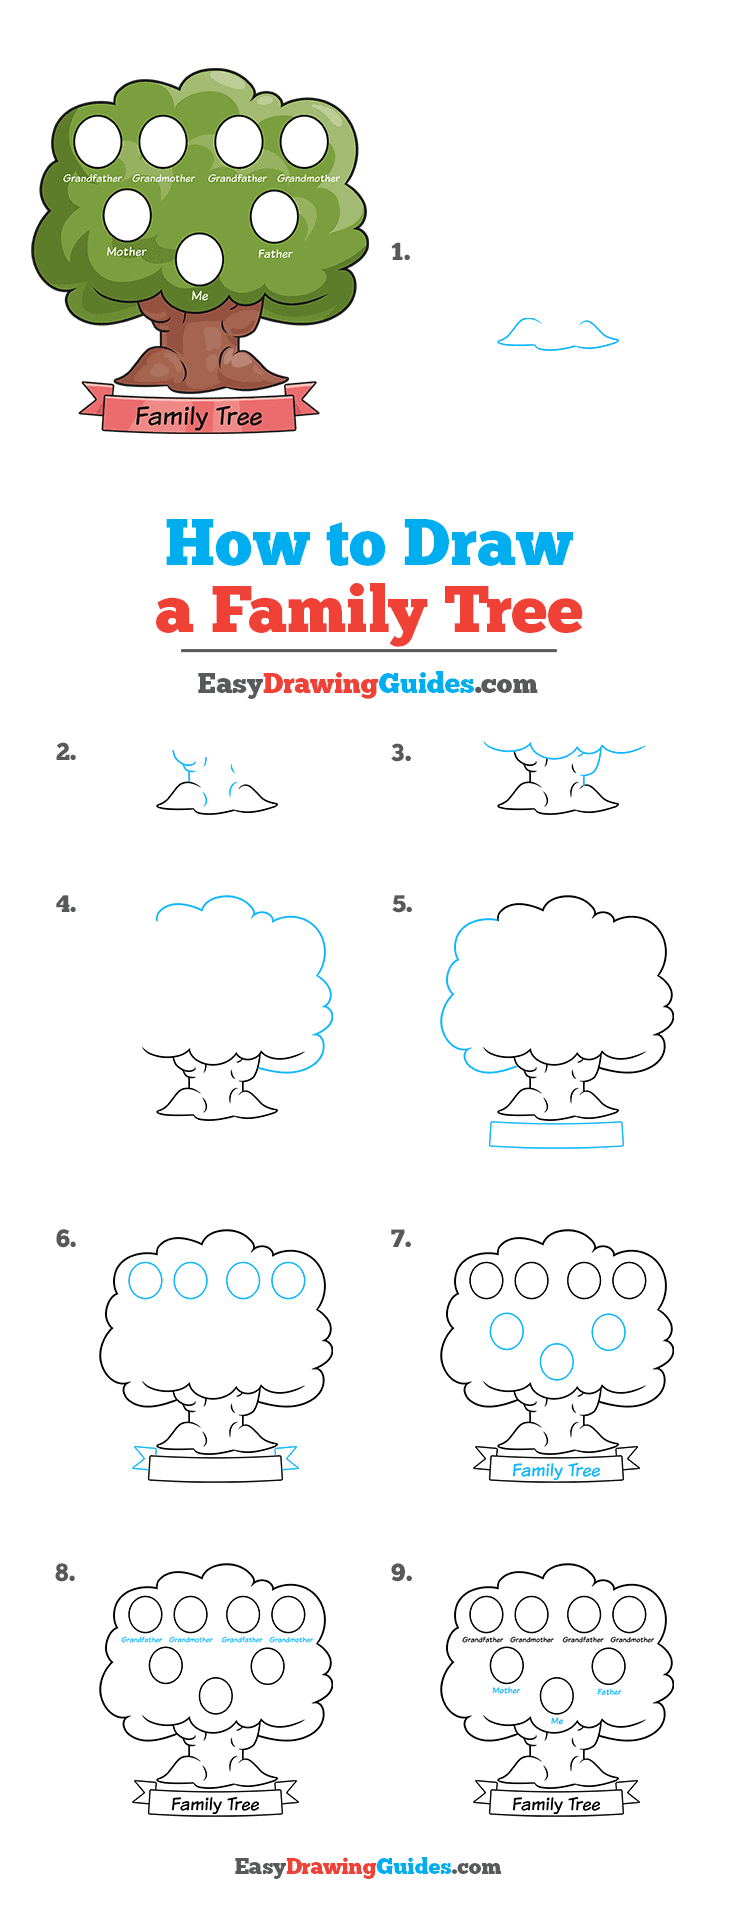 how to Draw a Family Tree Step by Step Tutorial Image